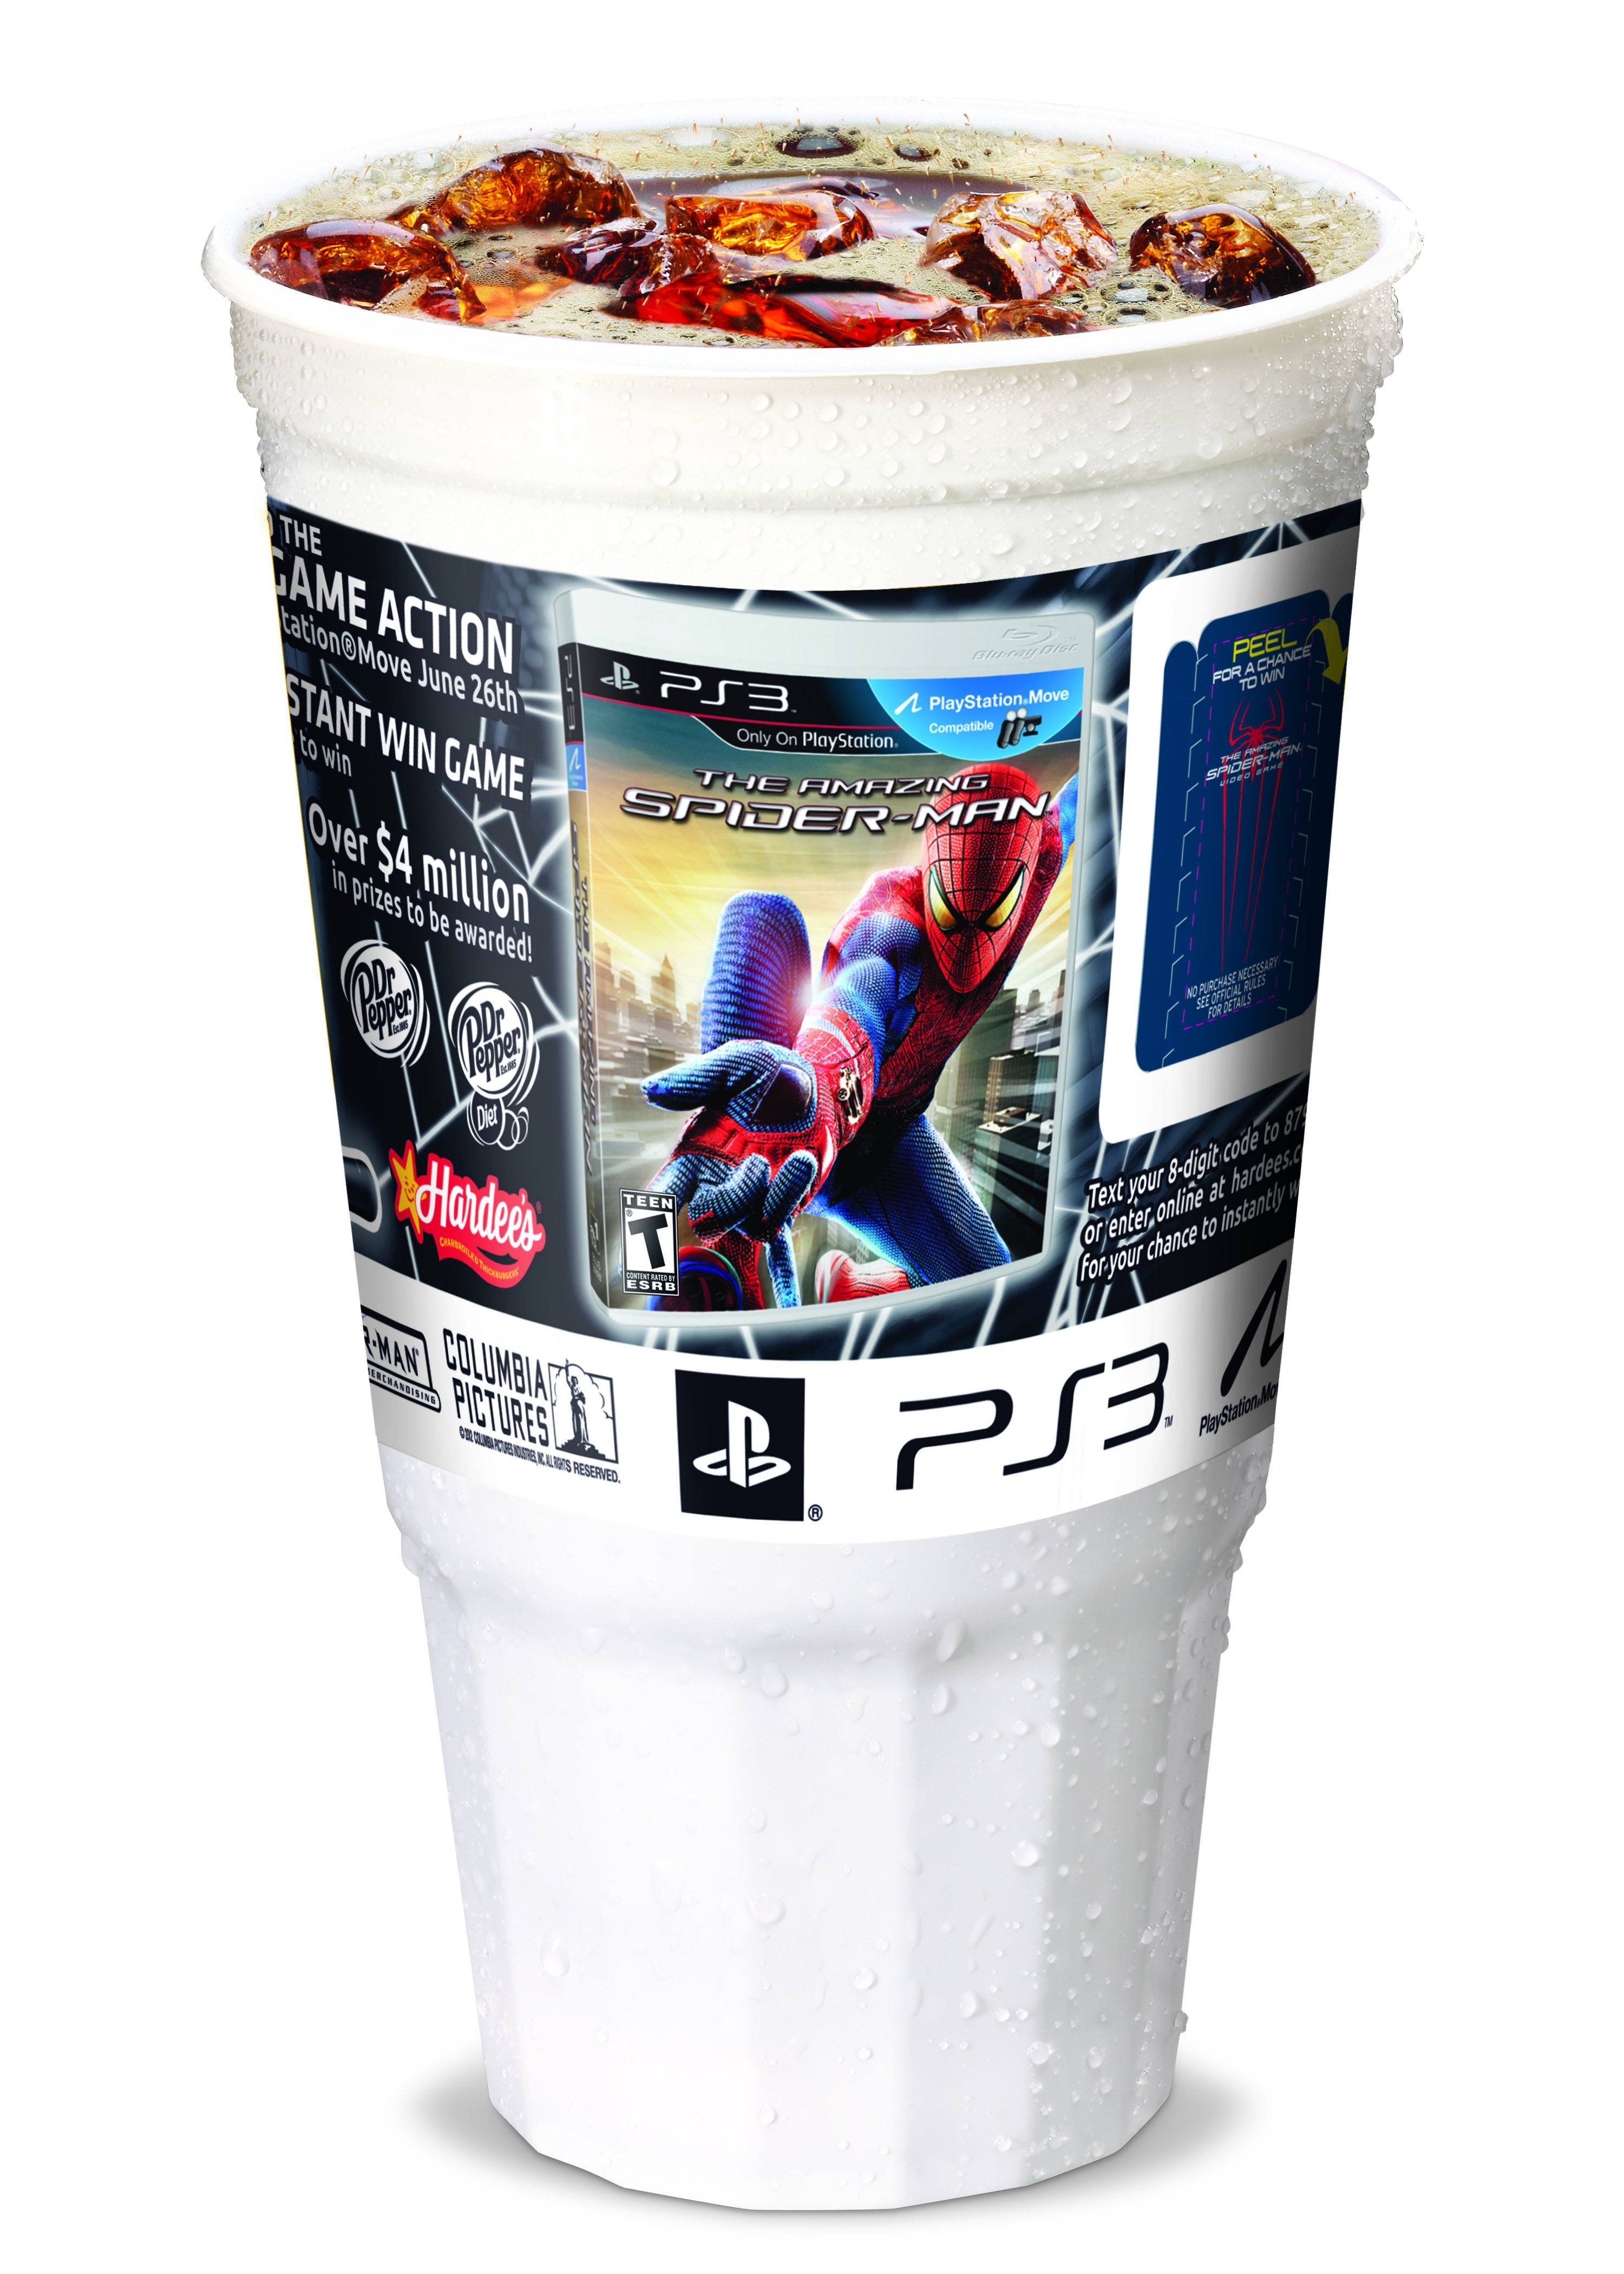 Carl's Jr. and Hardee's is offering a 40-ounce collectors' cup. The Amazing Spider-Man Video Game Instant-Win cup promotion features a total prize pool valued at more than $7 million.